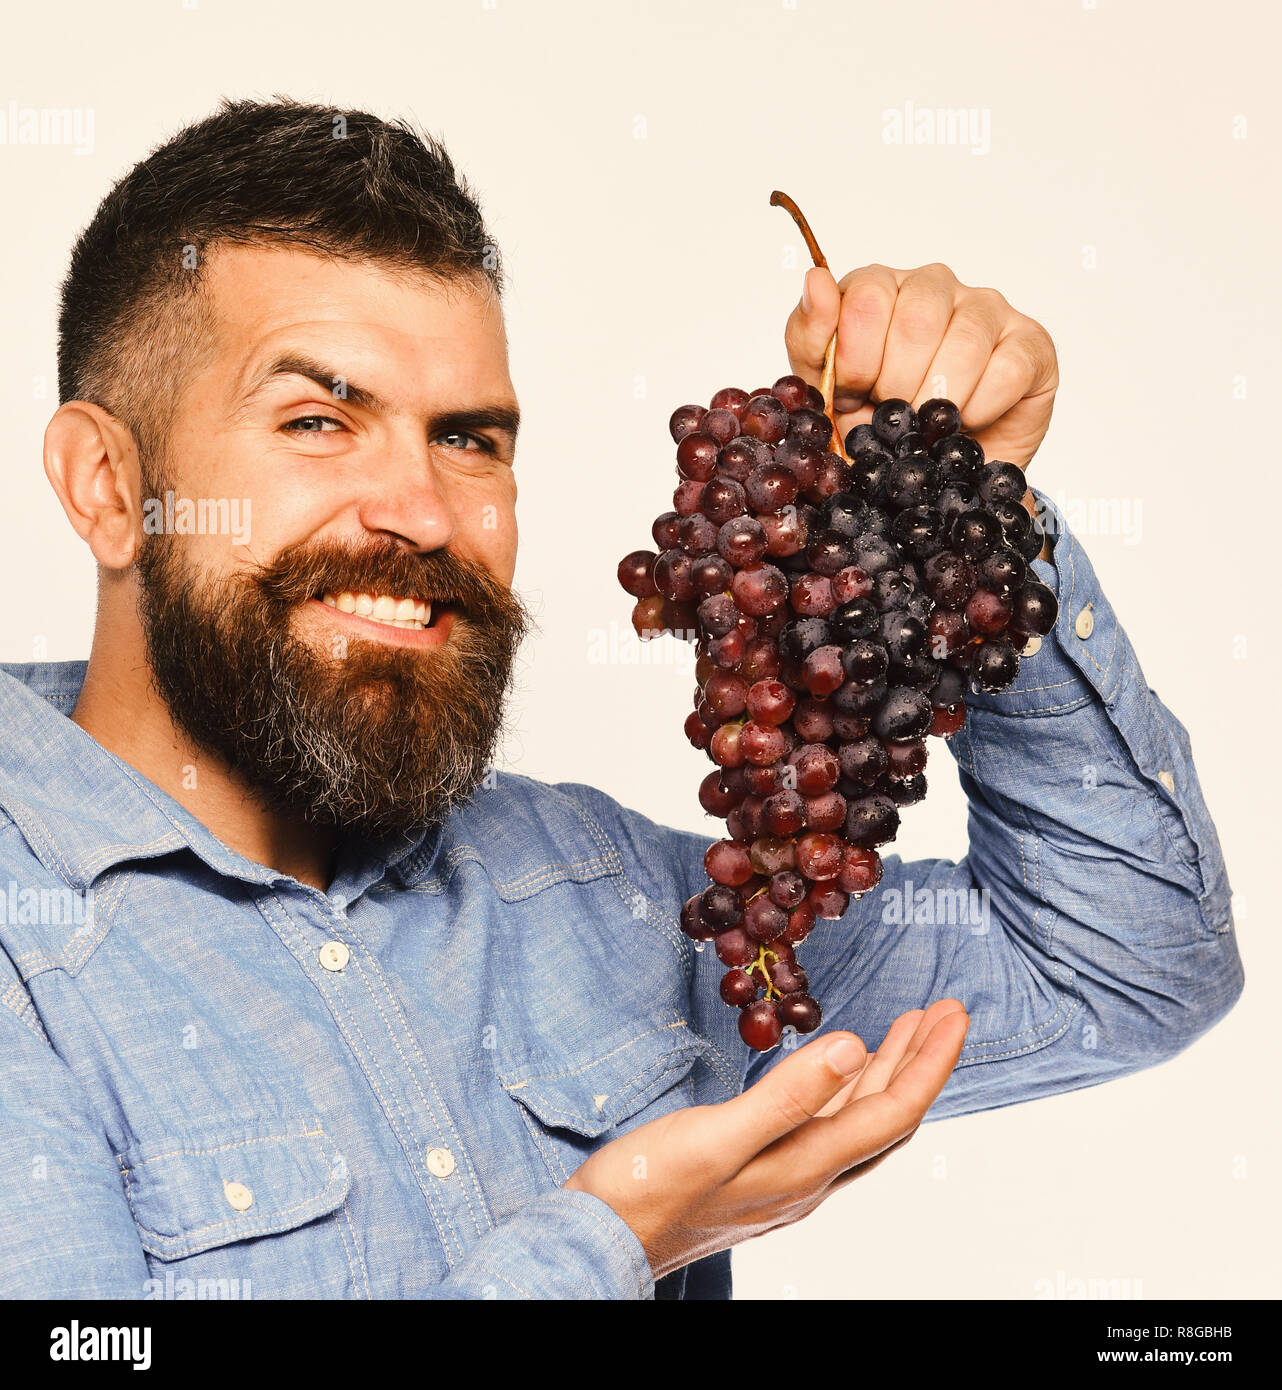 Viticulture and gardening concept. Winegrower with tricky smiling face holds cluster of grapes. Farmer shows his harvest. Man with beard holds bunch of black grapes isolated on white background - Stock Image